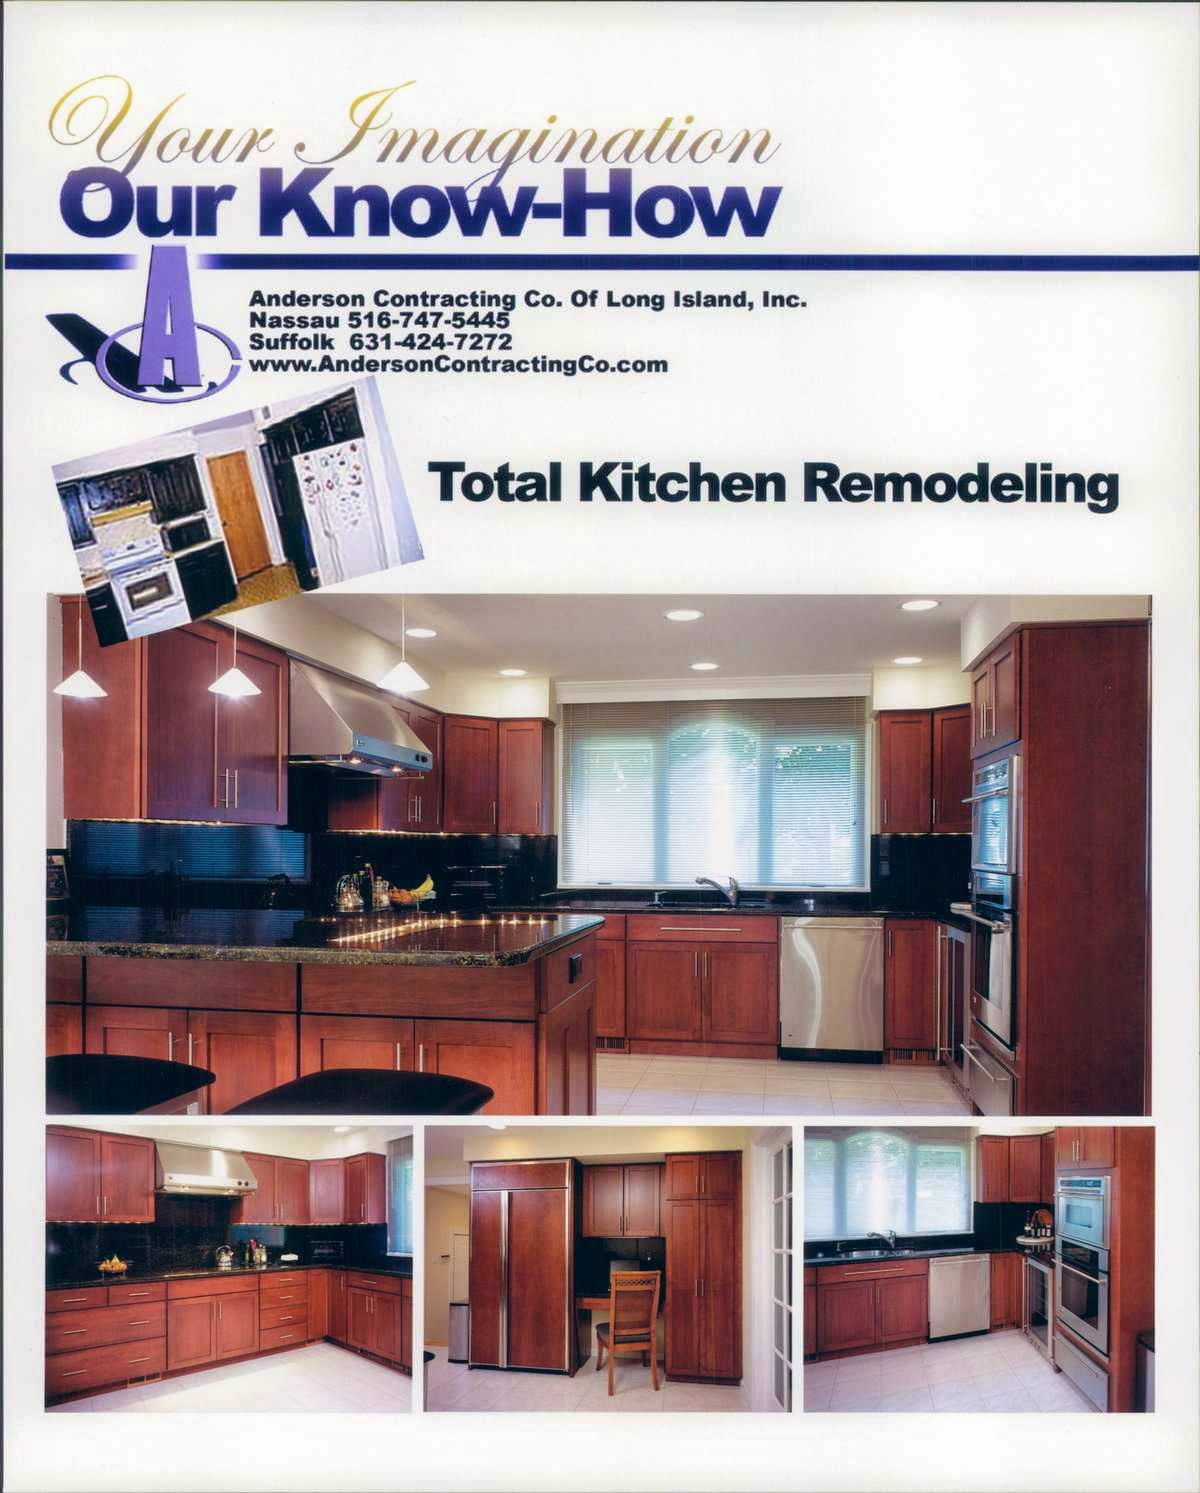 kitchen remodeling anderson contracting co of long island inc 1